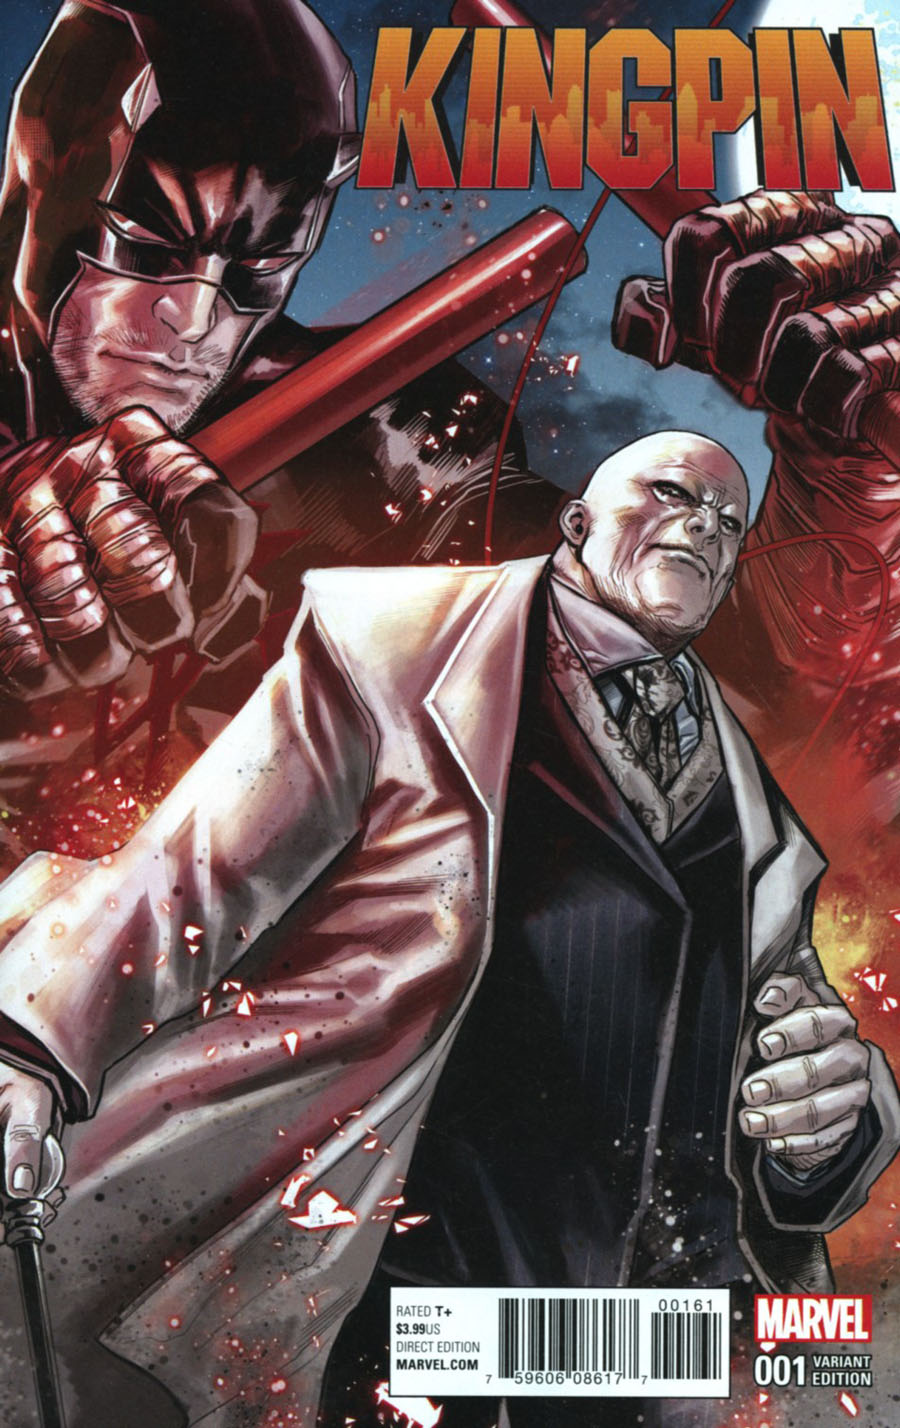 Kingpin Vol 2 #1 Cover C Variant Marco Checchetto Connecting Cover